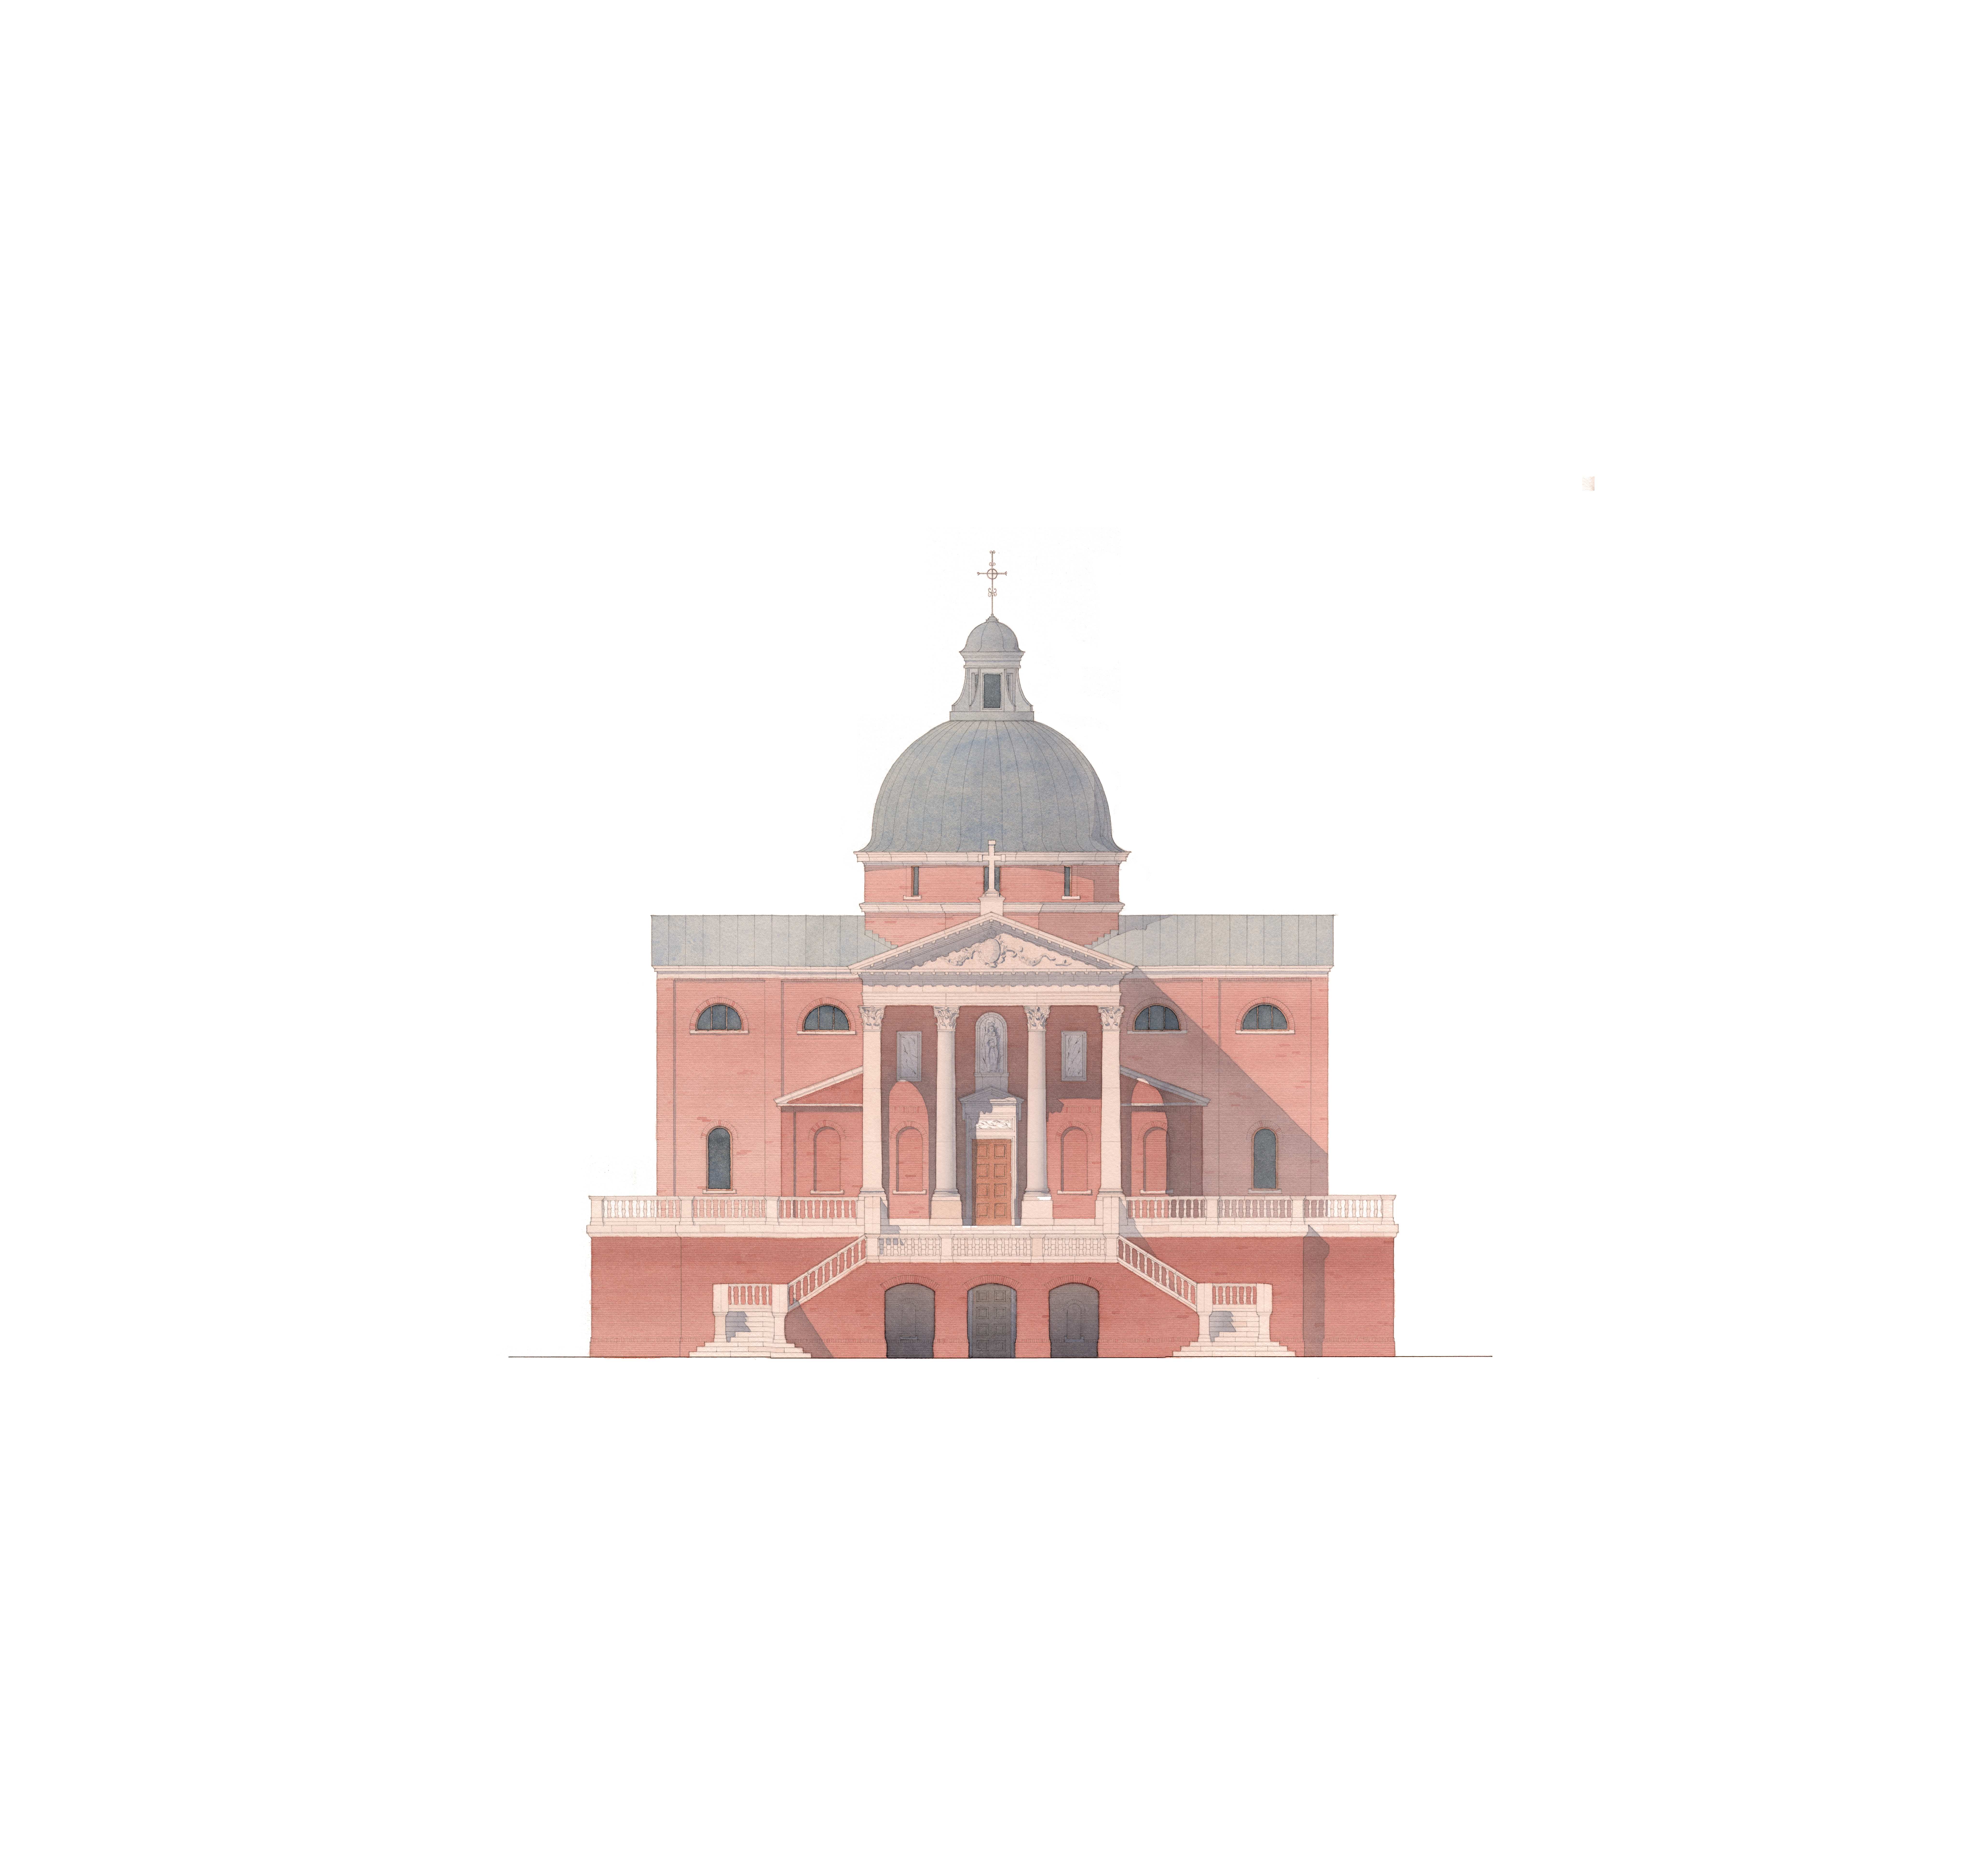 Watercolor rendering palladio inspired brick church renaissance classical architecture with pediment dome by Harrison Design